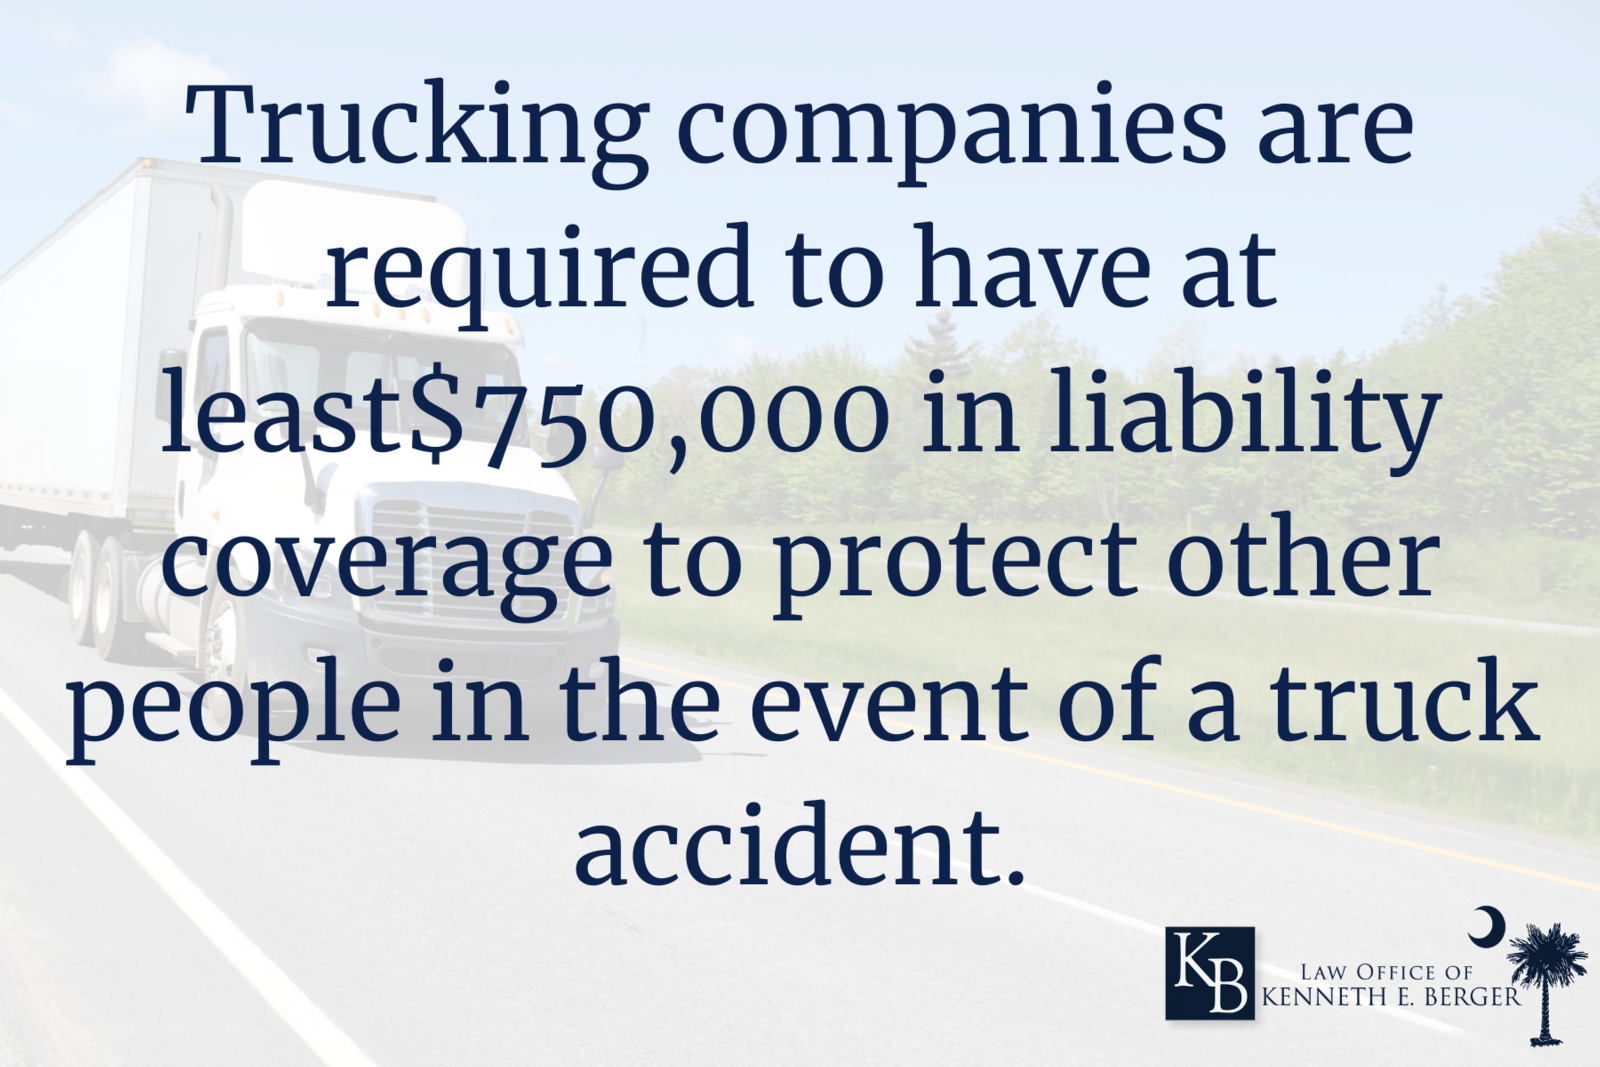 Trucking Insurance policy limits